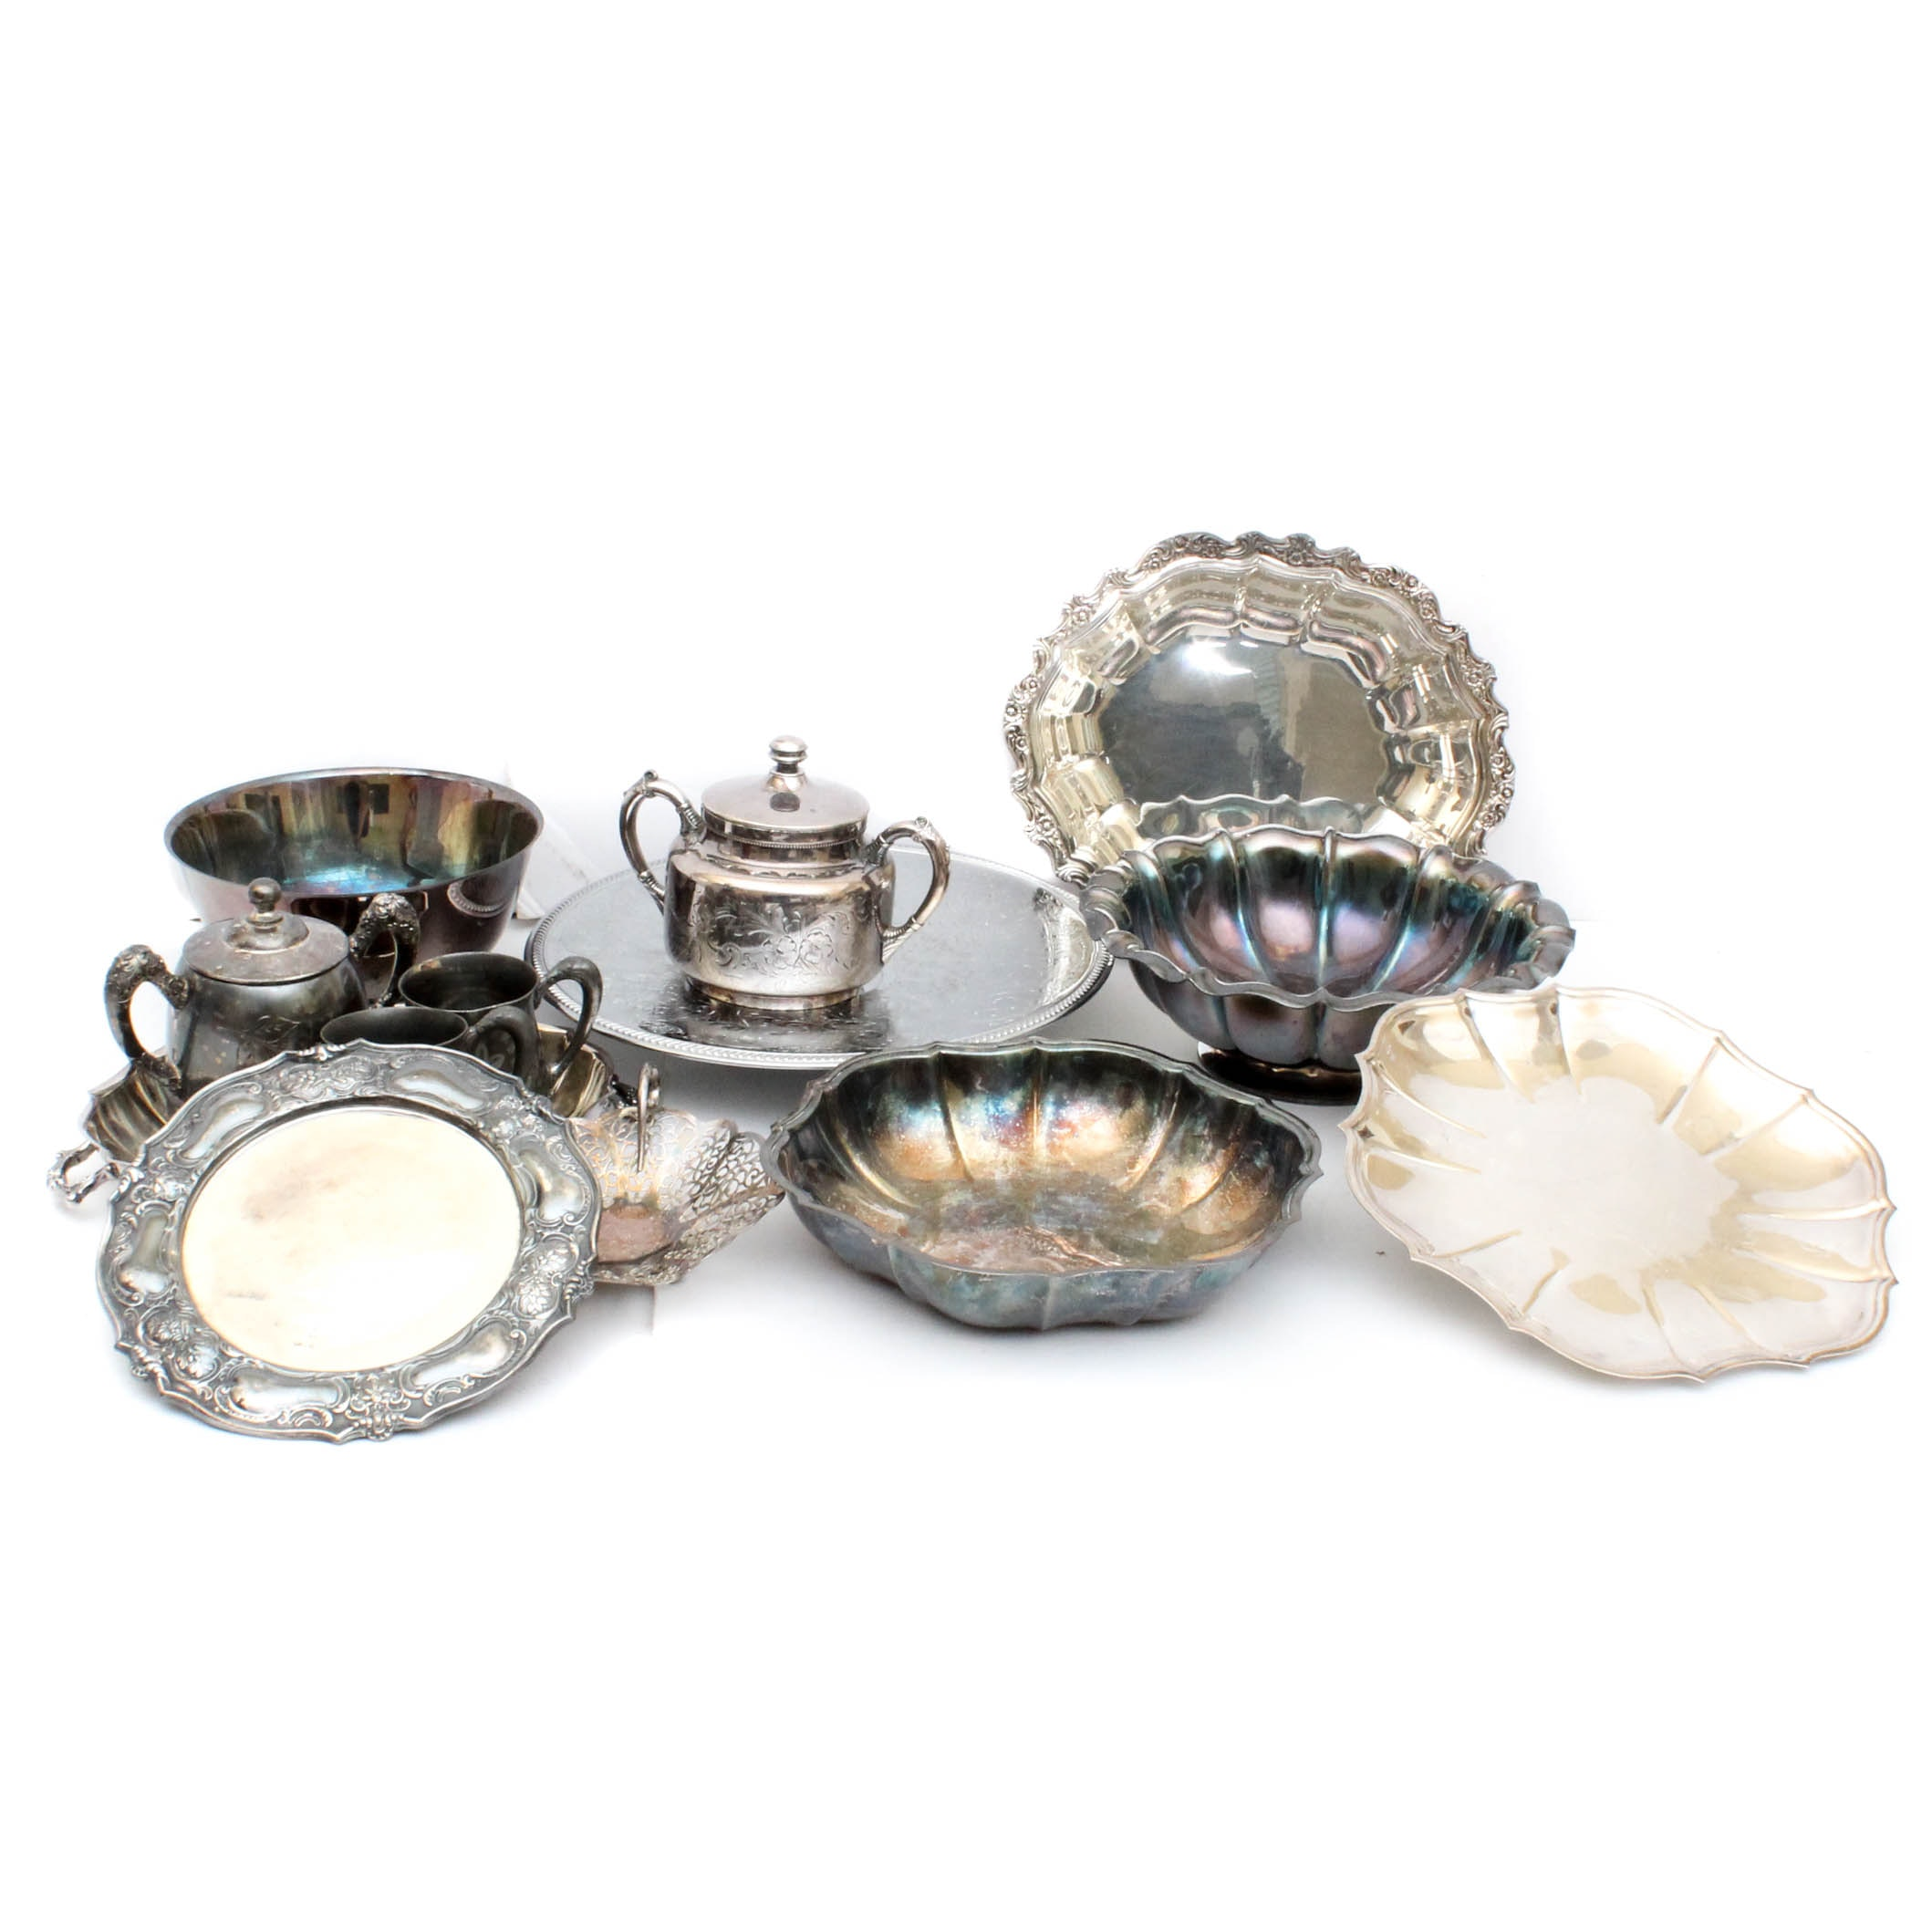 Silver Plated Tableware Featuring International Silver